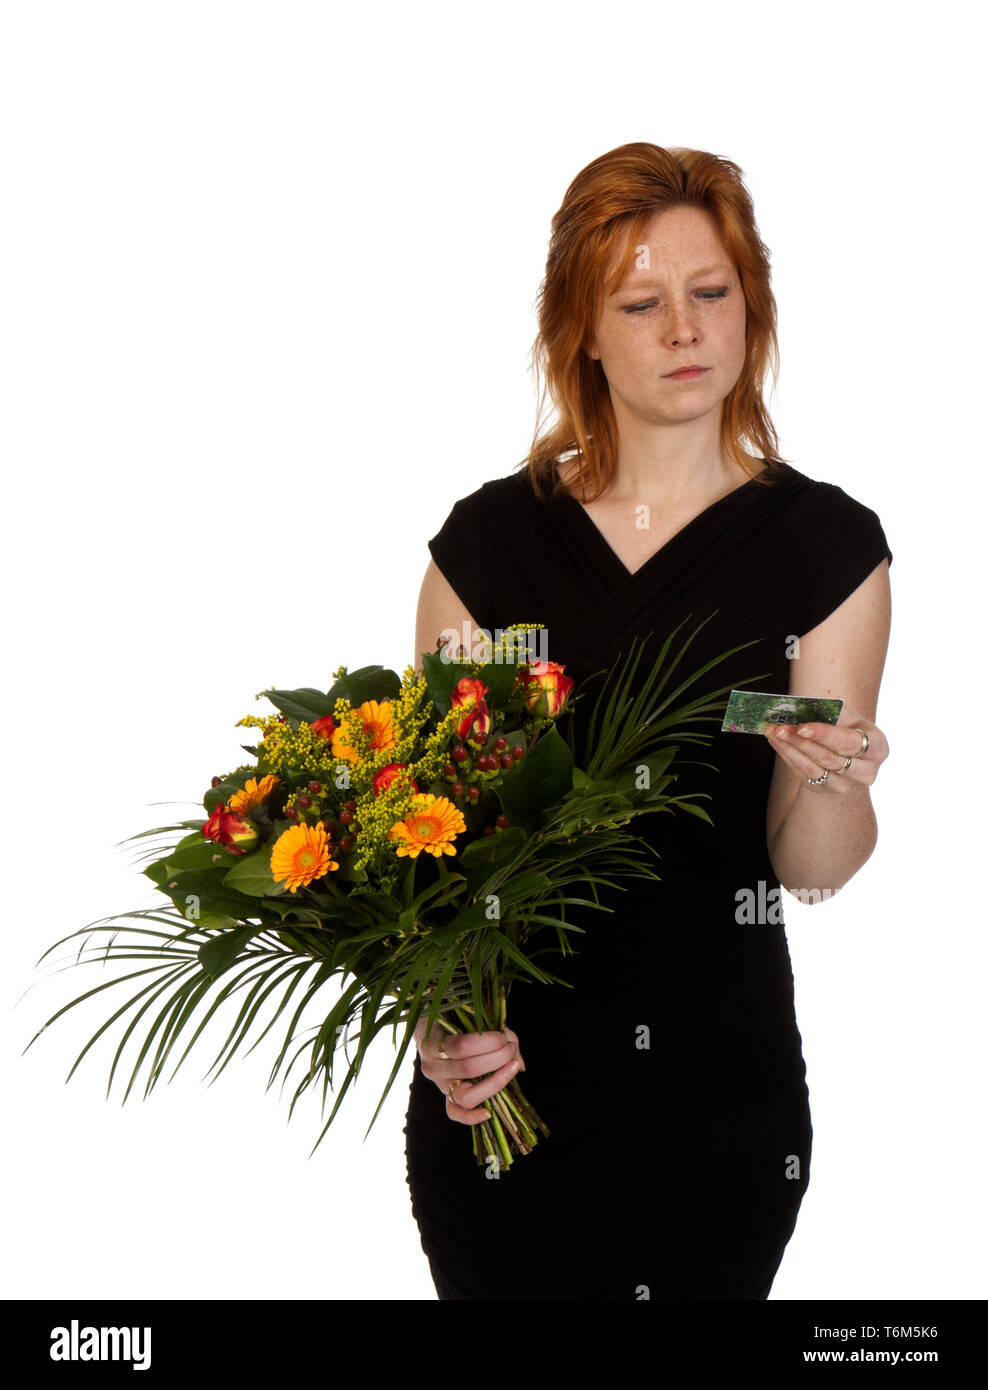 Woman is wondering who sent her flowers? - Stock Image